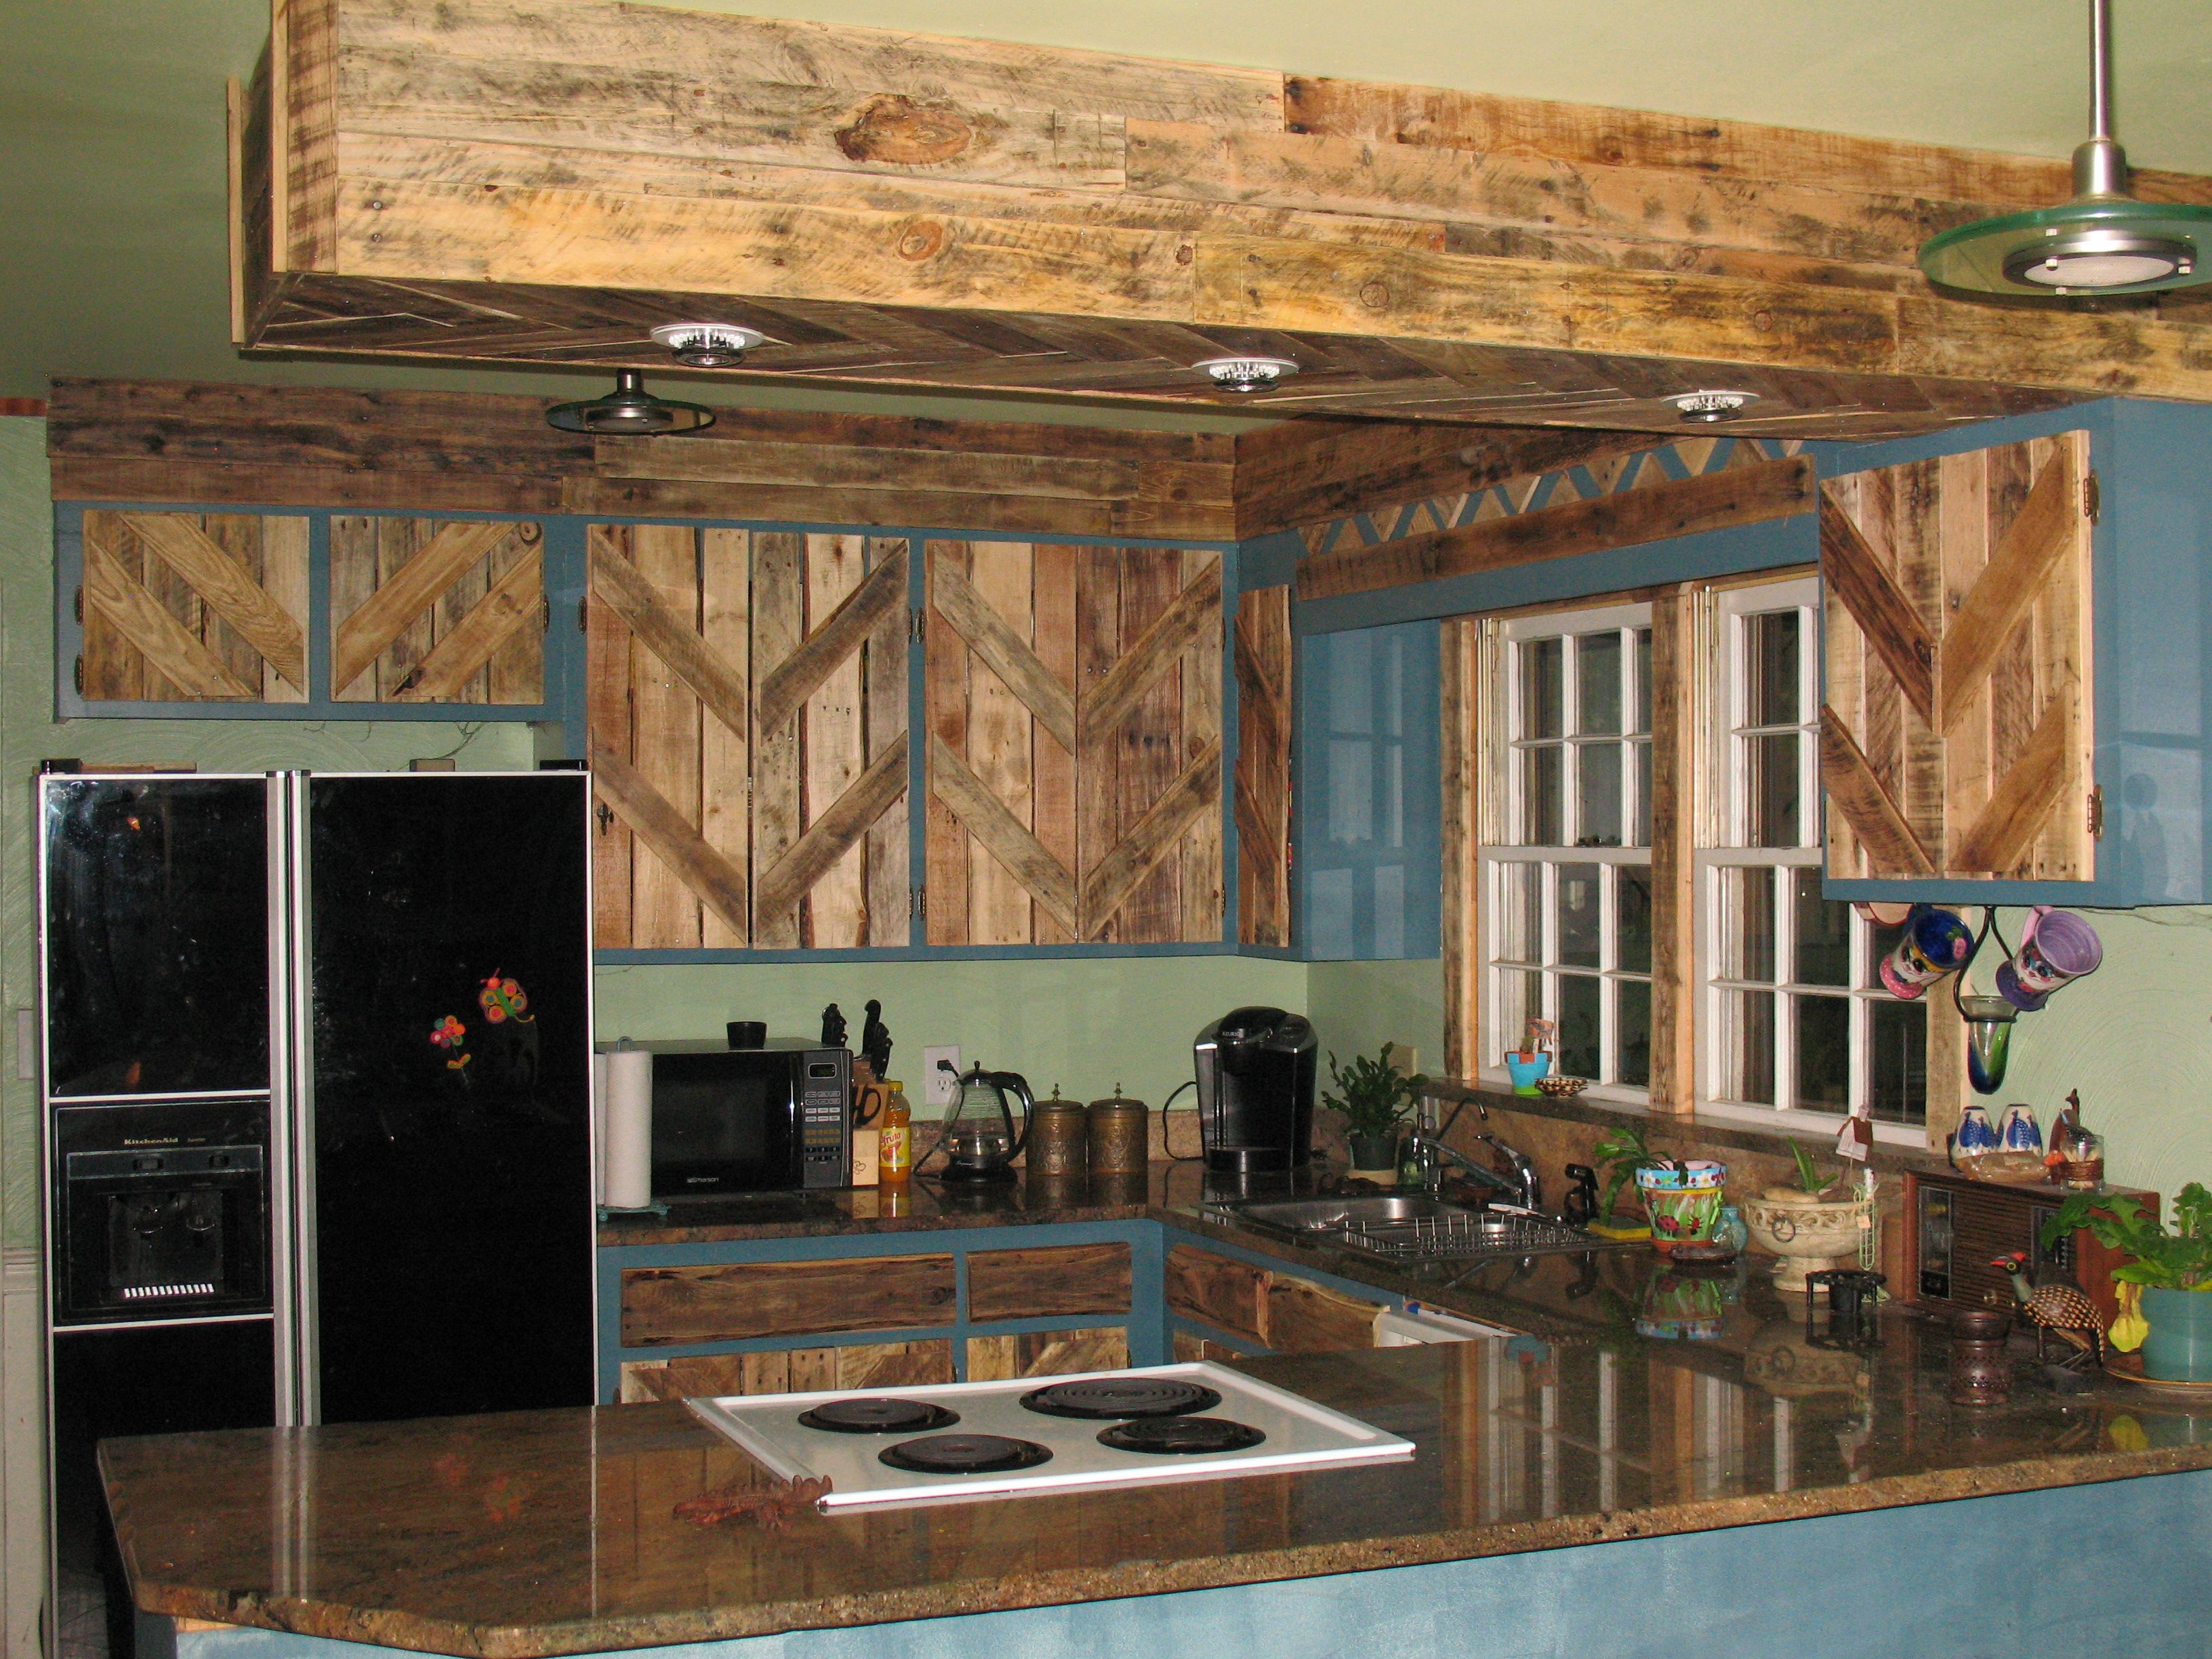 used kitchen cabinets Reclaimed Kitchen Cabinets Pallets used to reface the cabinet doors With Love From My